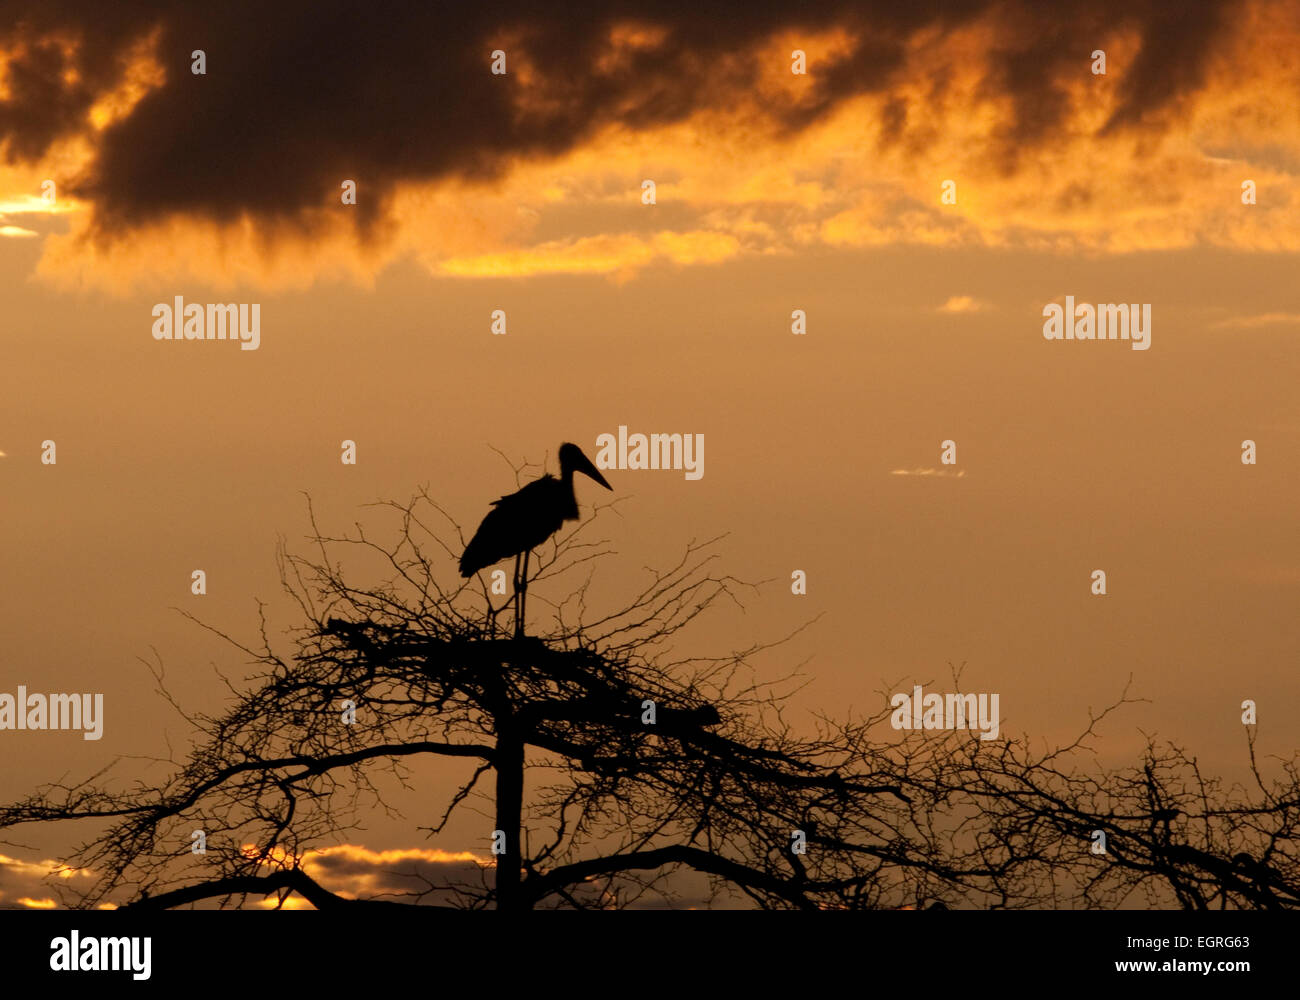 Marabou stork perched on top of tree at sunset Stock Photo